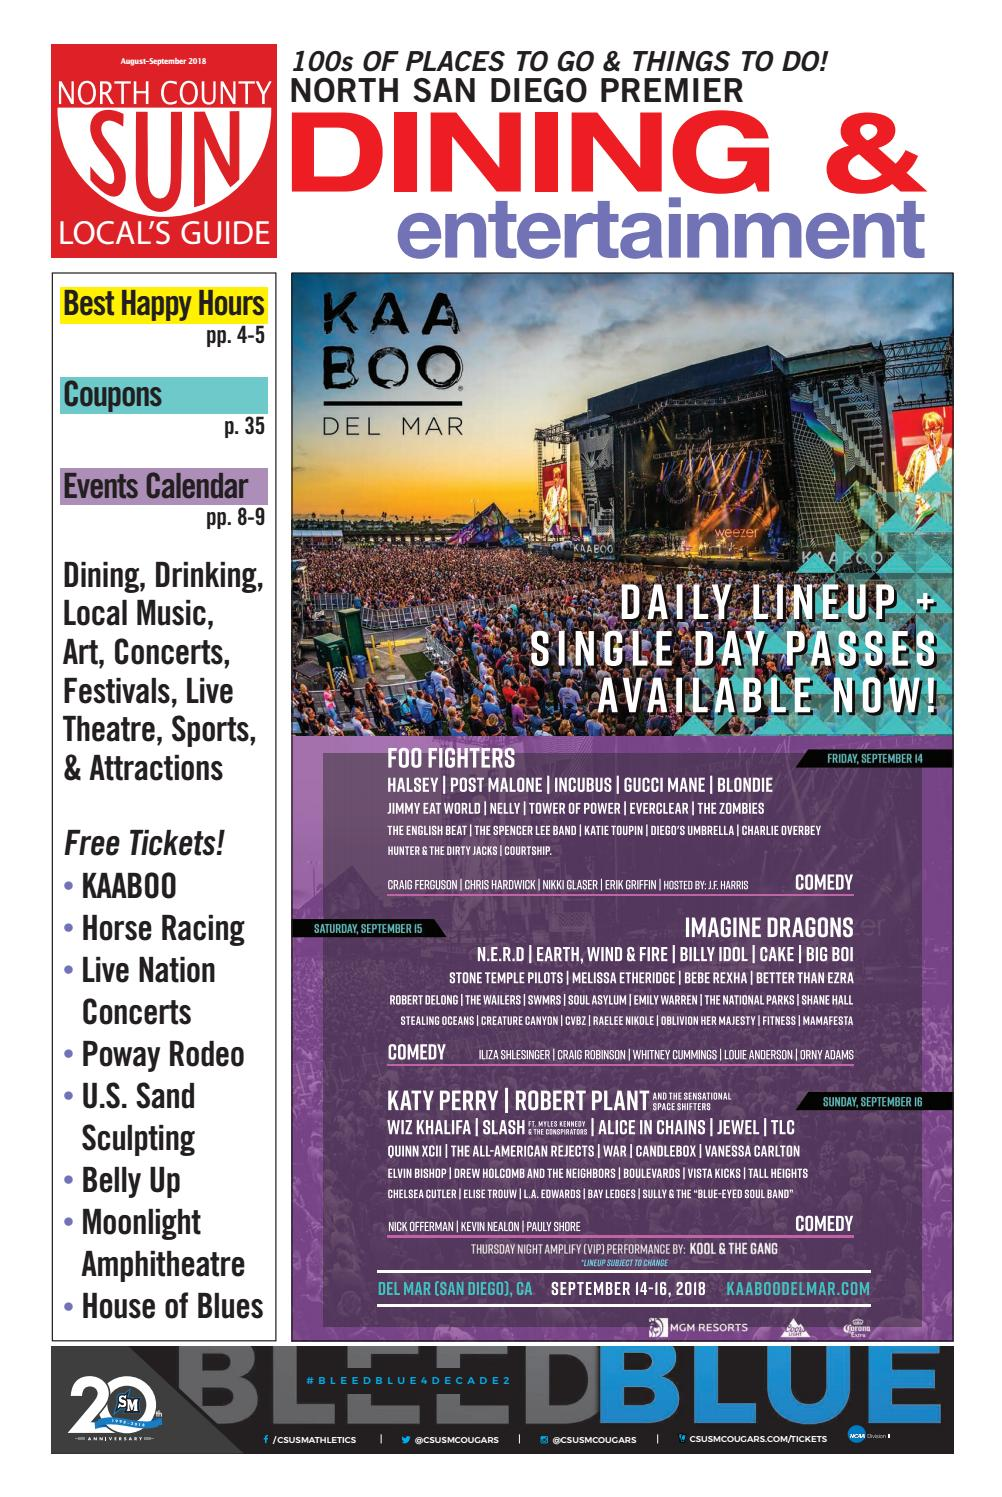 North County Sun - Local's Guide by Andy Lee - issuu